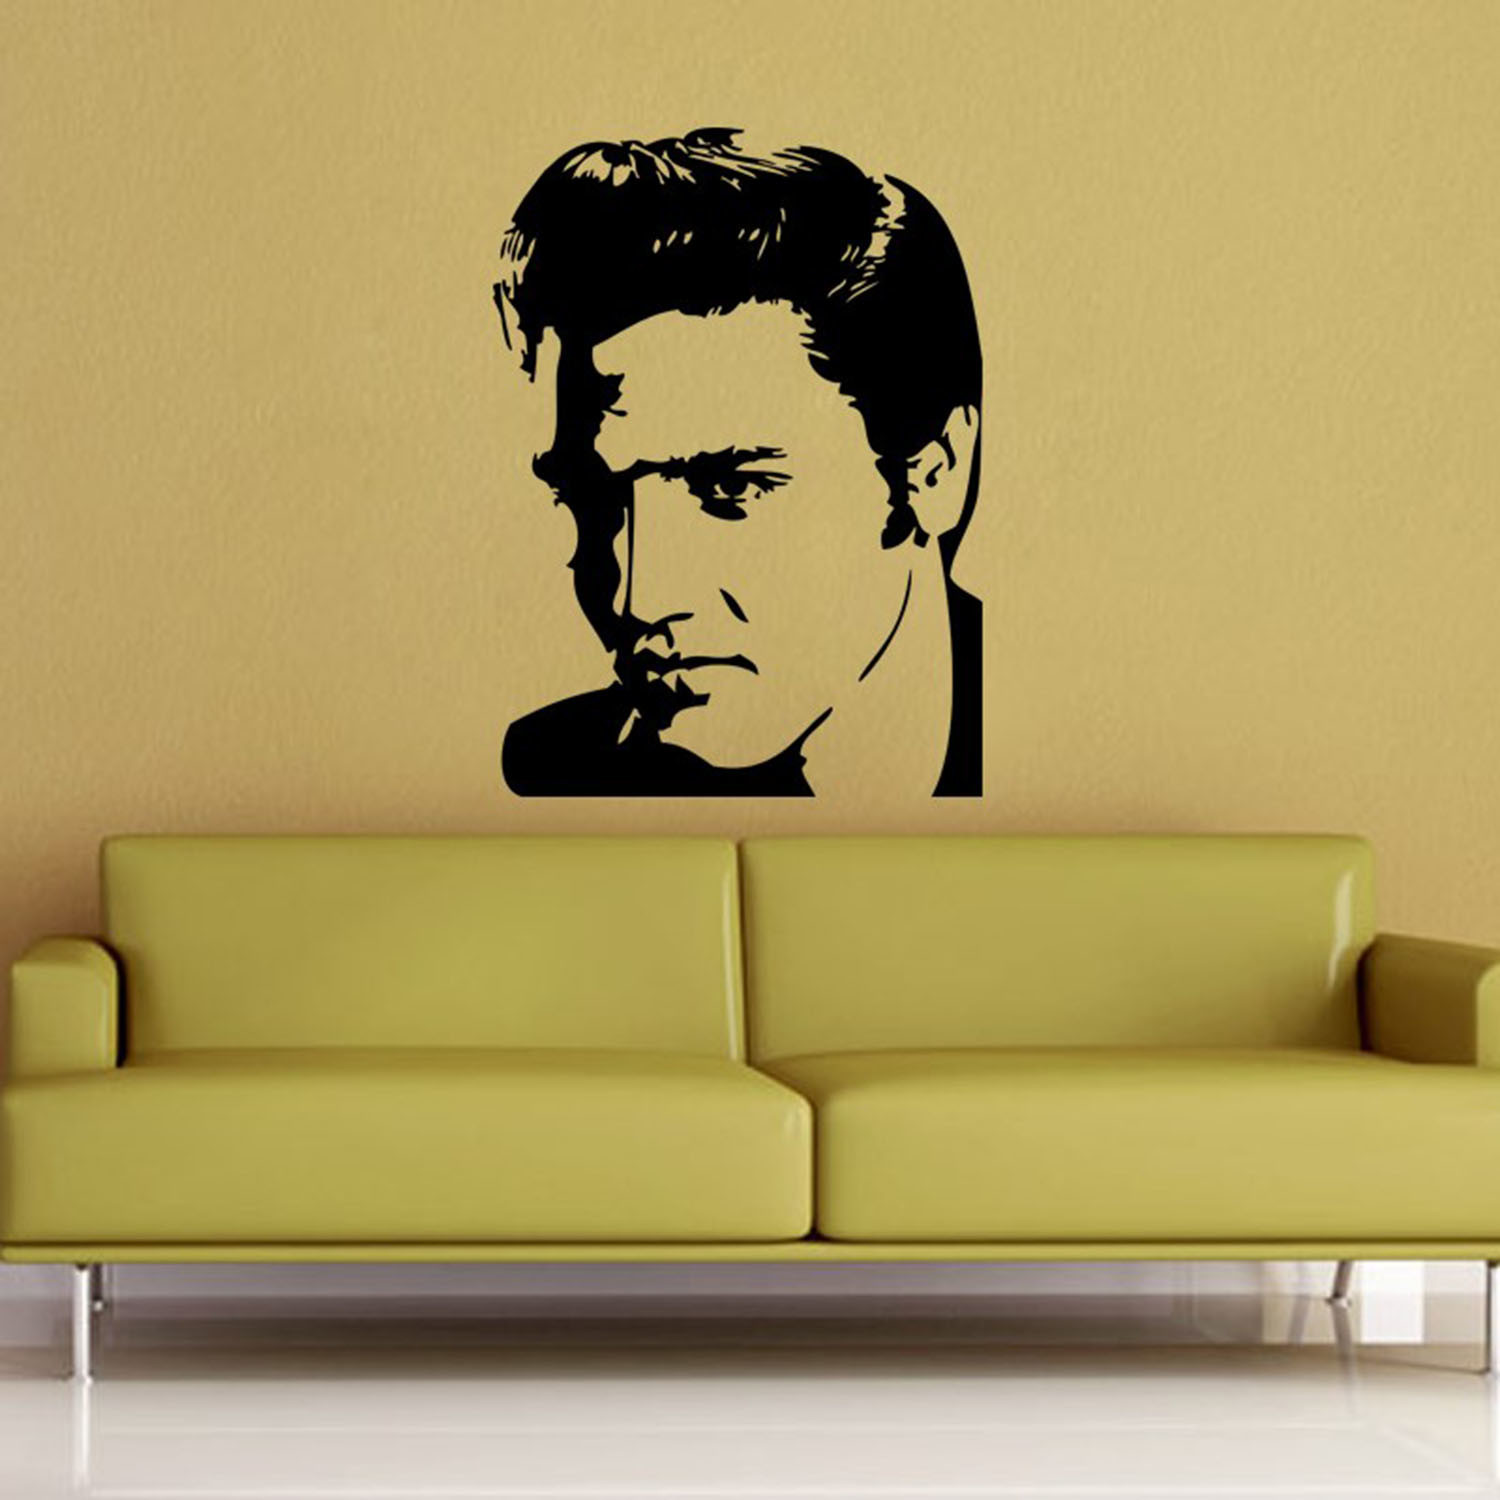 Elvis Presley - Ambiance Sticker - Touch of Modern